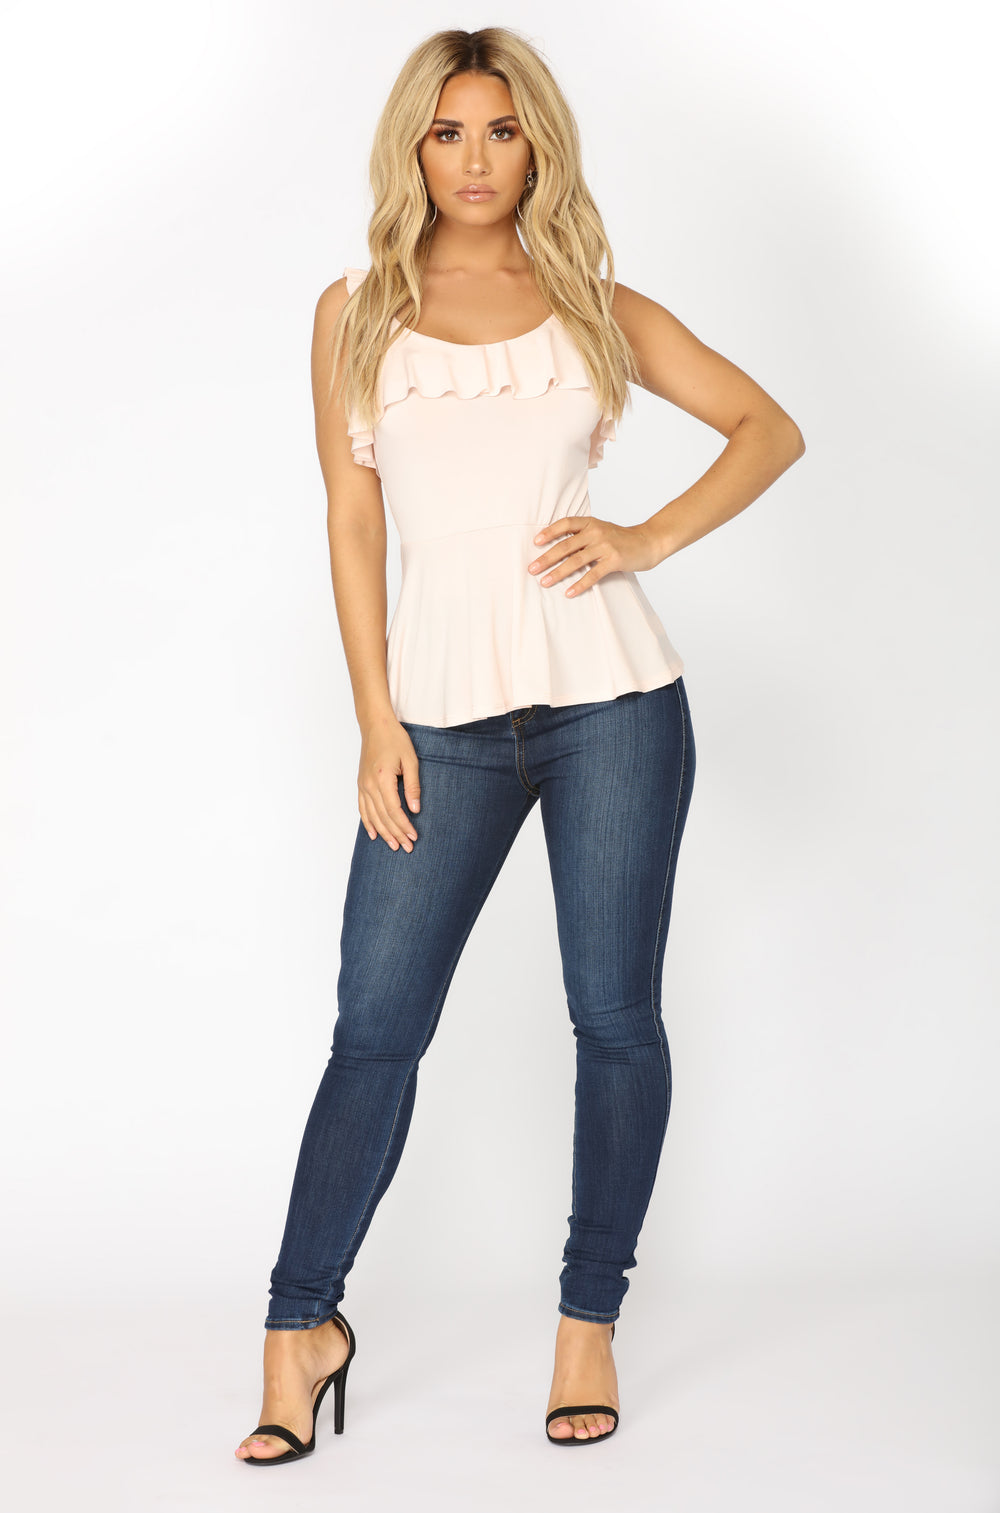 Some Girls Ruffle Top - Blush